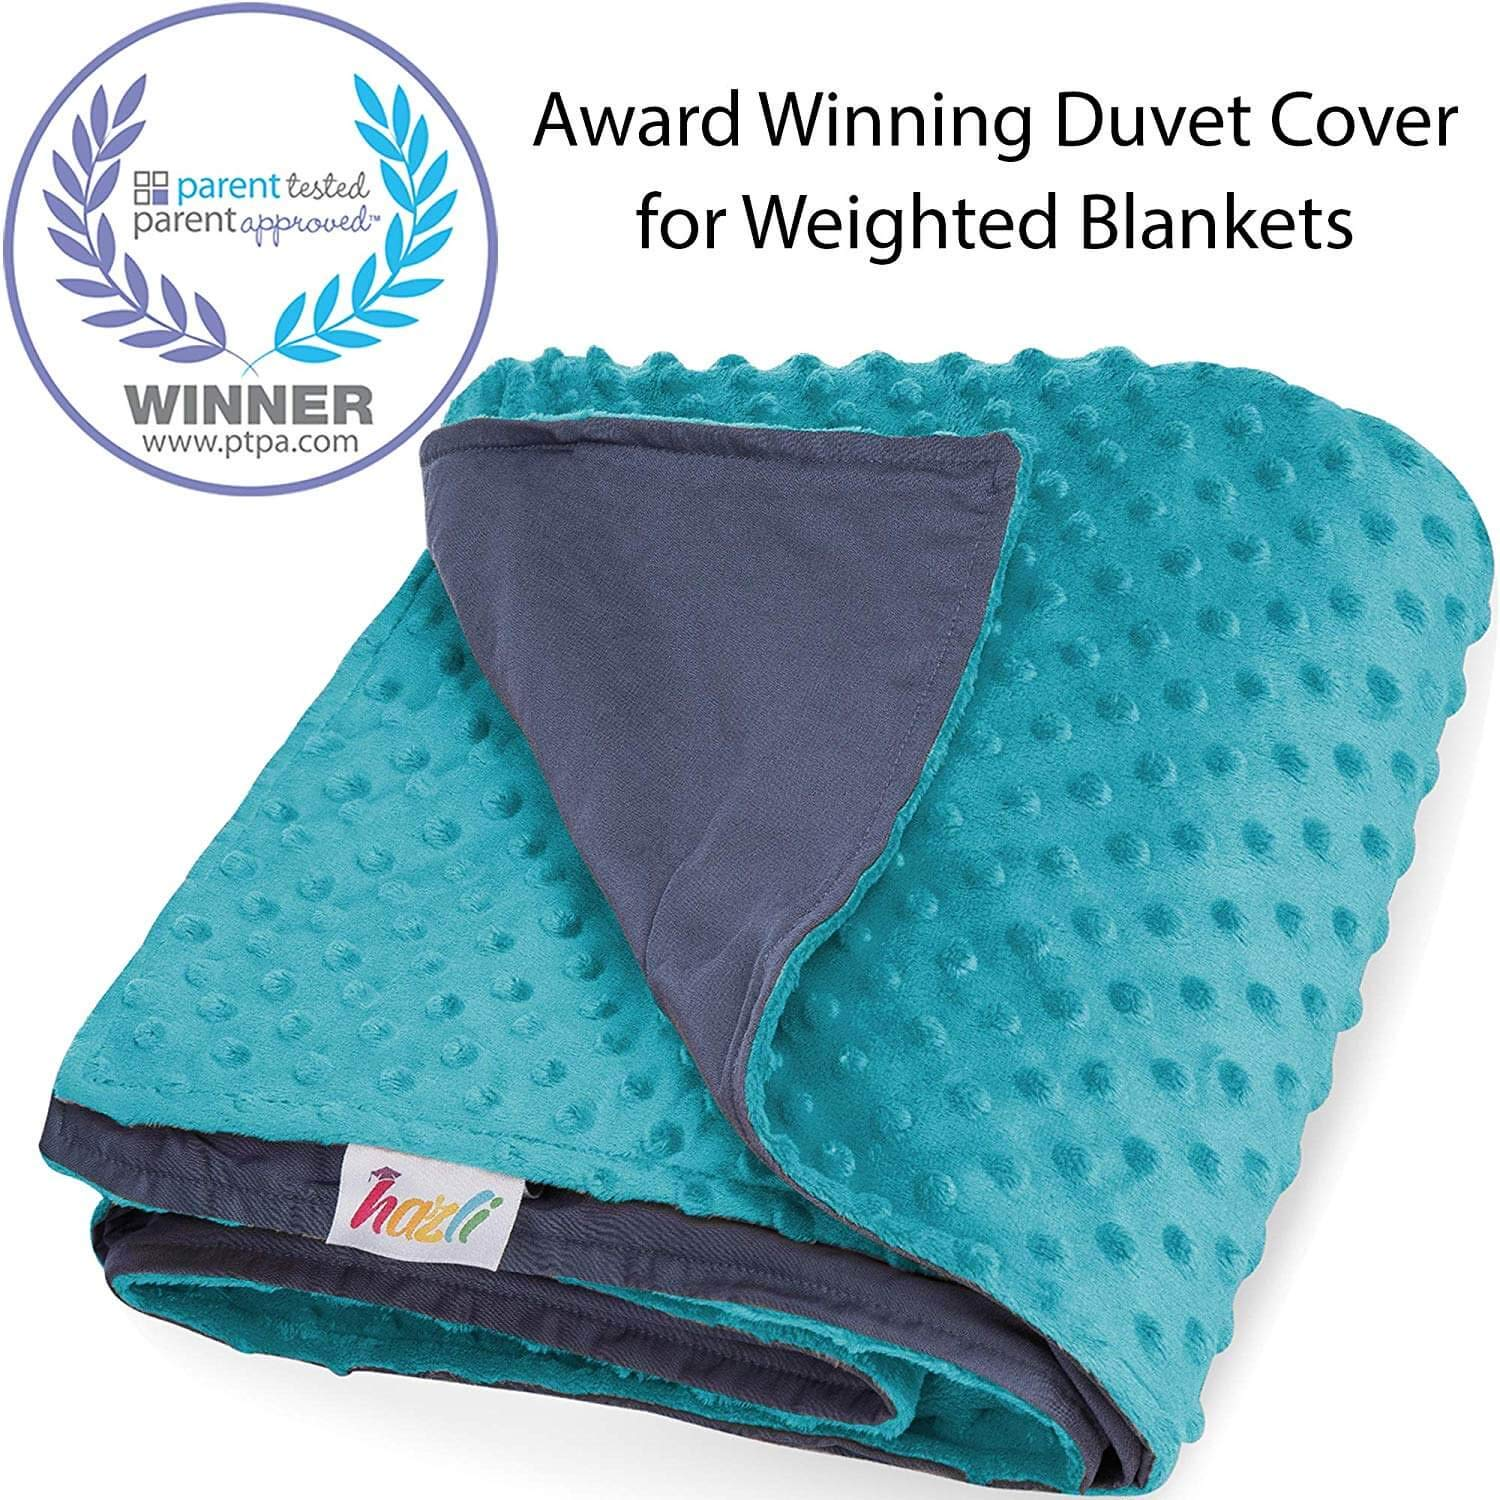 Duvet Cover for Weighted Blanket 48''x 72'' - Cooling Bamboo and Soft Minky Dot - Removable Duvet Cover for Hot and Cold Nights